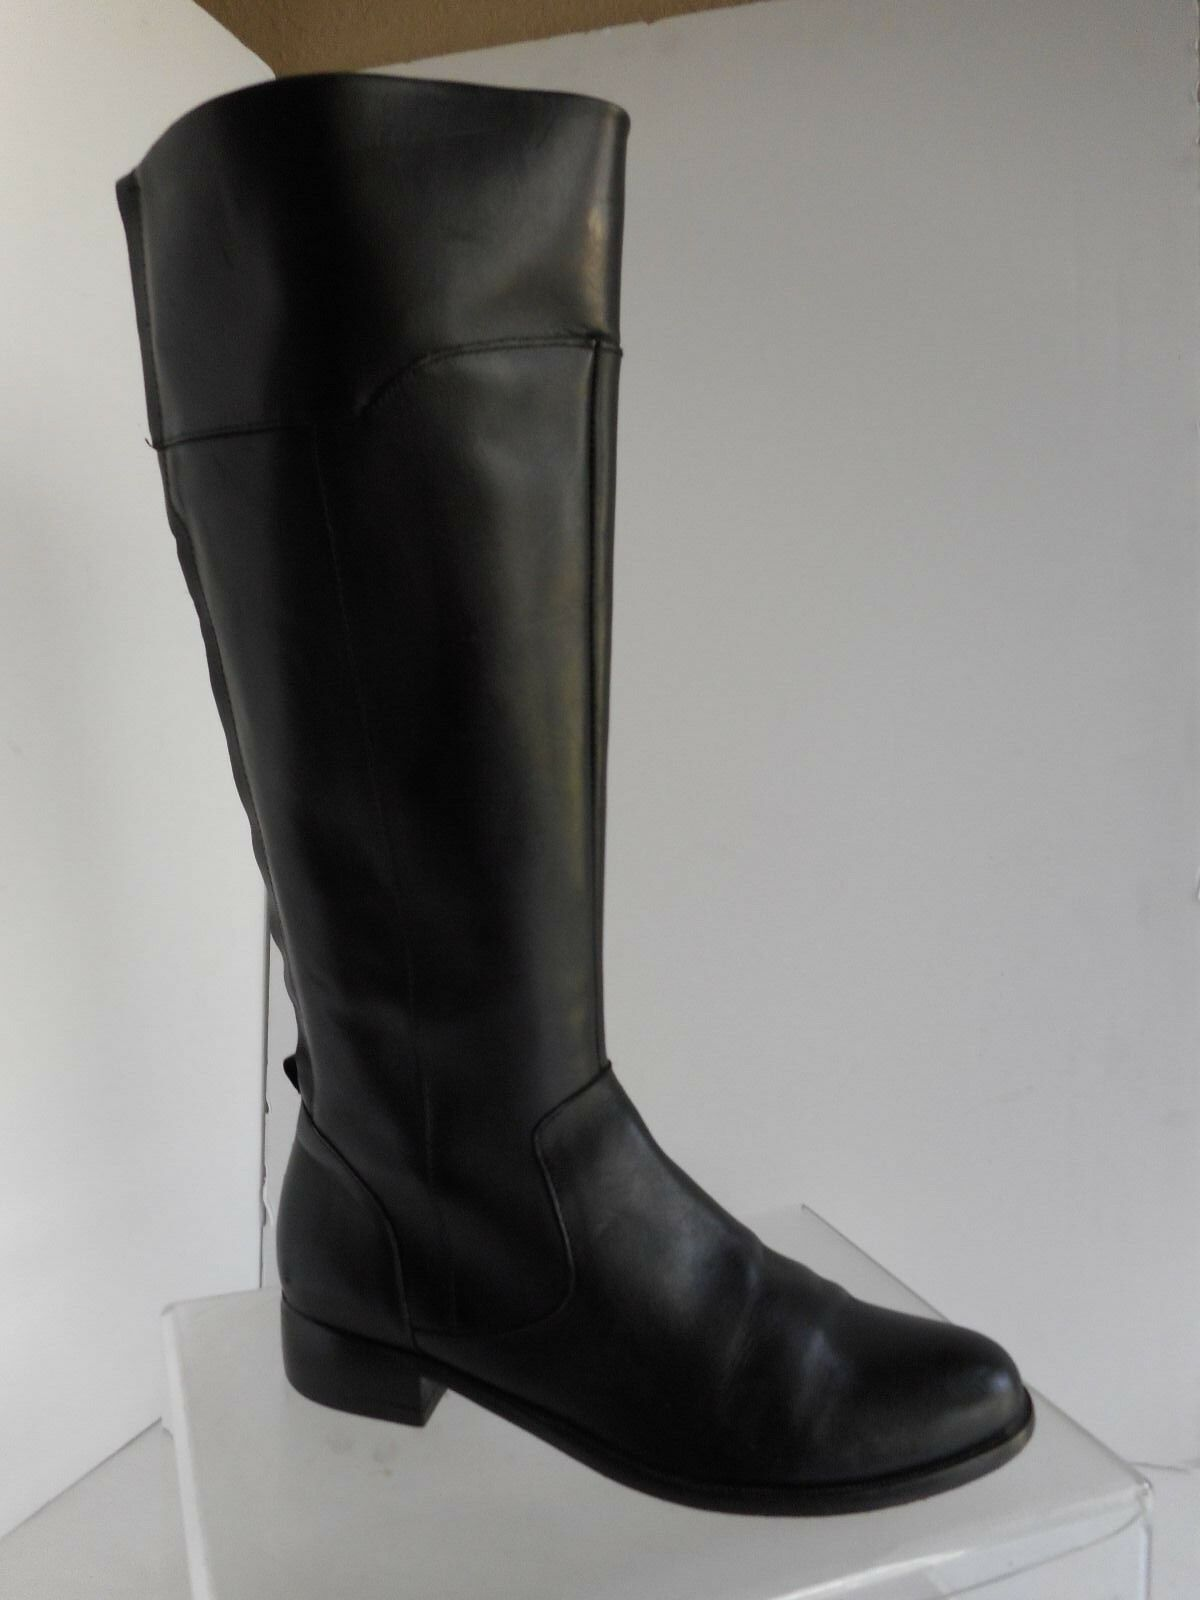 Corso Como Samual Women's Sz 6.5 Black Leather Knee High Tall Riding Boots